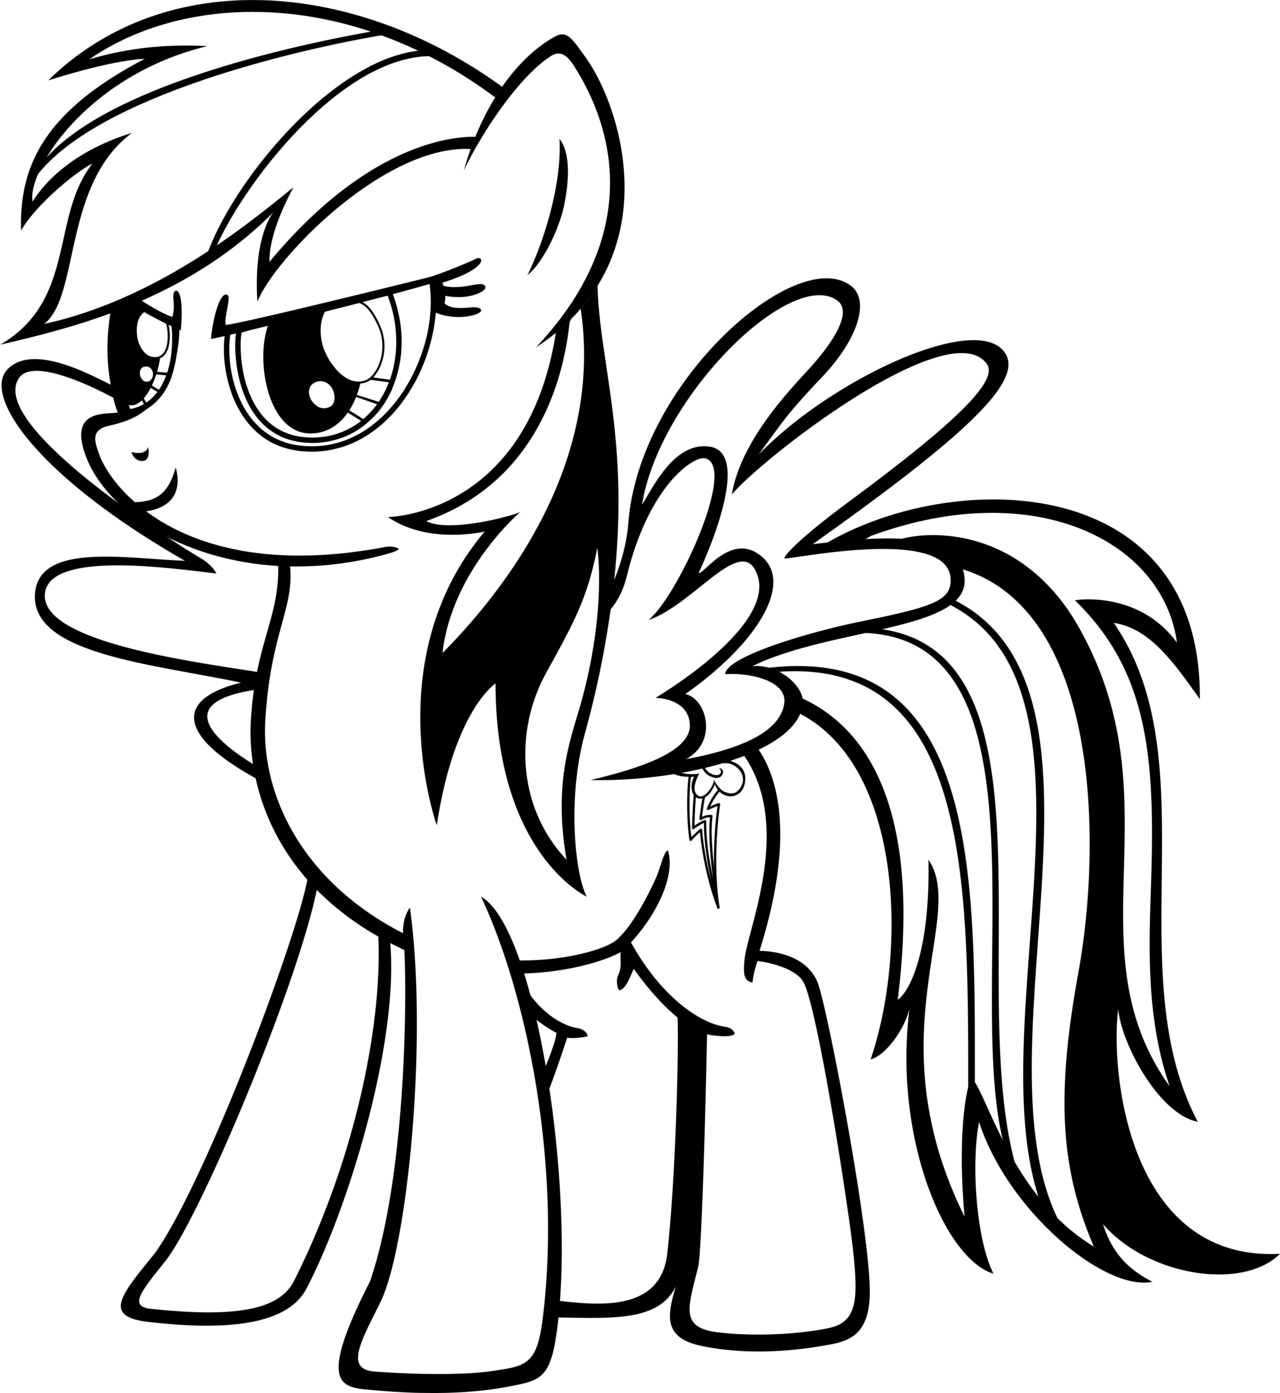 dash coloring pages - photo#28